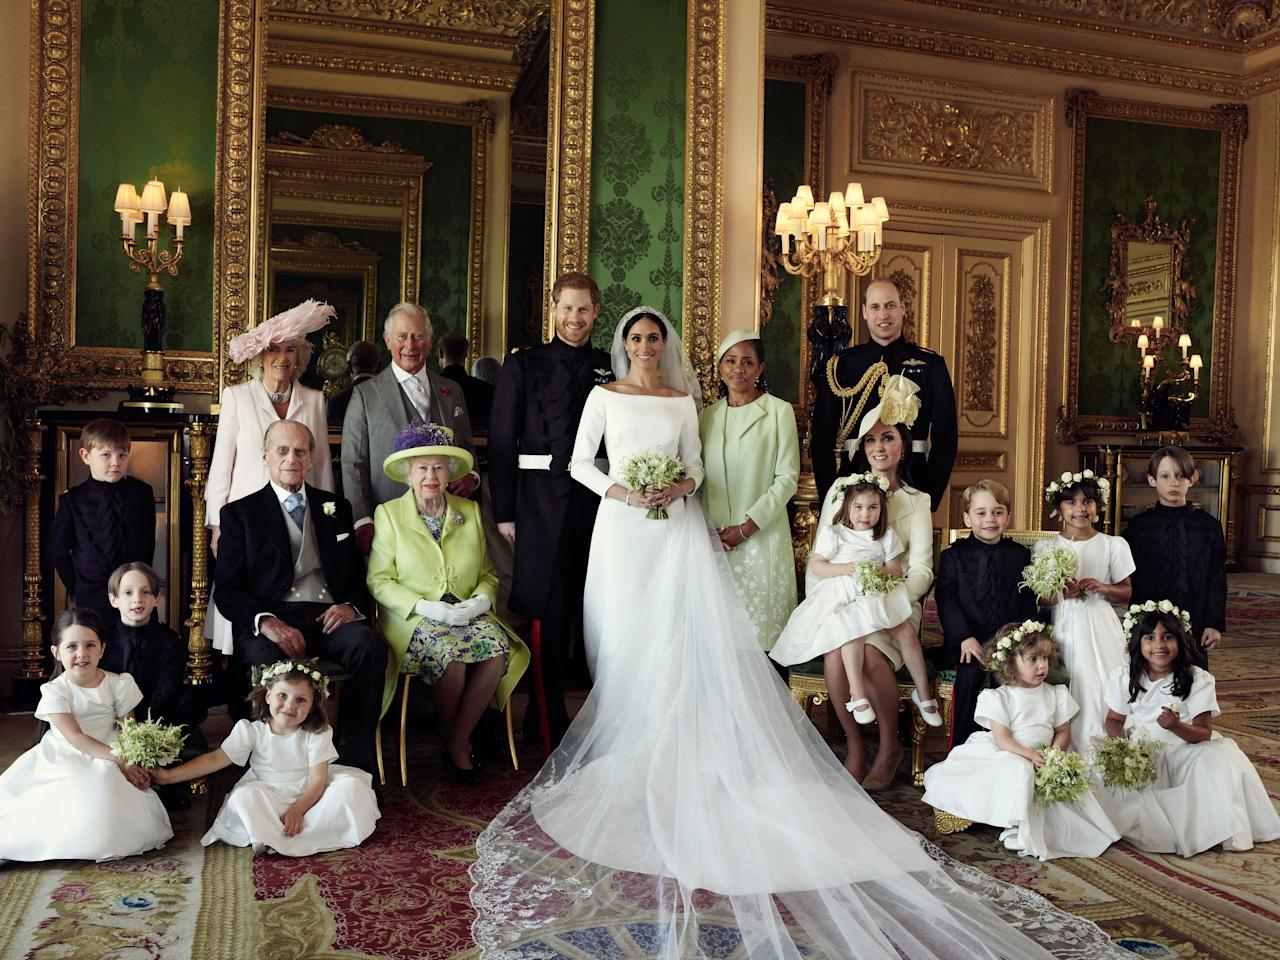 <p>This official wedding photograph released by the Duke and Duchess of Sussex shows The Duke and Duchess in The Green Drawing Room, Windsor Castle, with (left-to-right): Back row: Master Jasper Dyer, the Duchess of Cornwall, the Prince of Wales, Ms. Doria Ragland, The Duke of Cambridge; middle row: Master Brian Mulroney, the Duke of Edinburgh, Queen Elizabeth II, the Duchess of Cambridge, Princess Charlotte, Prince George, Miss Rylan Litt, Master John Mulroney; Front row: Miss Ivy Mulroney, Miss Florence van Cutsem, Miss Zalie Warren, Miss Remi Litt. (PA) </p>